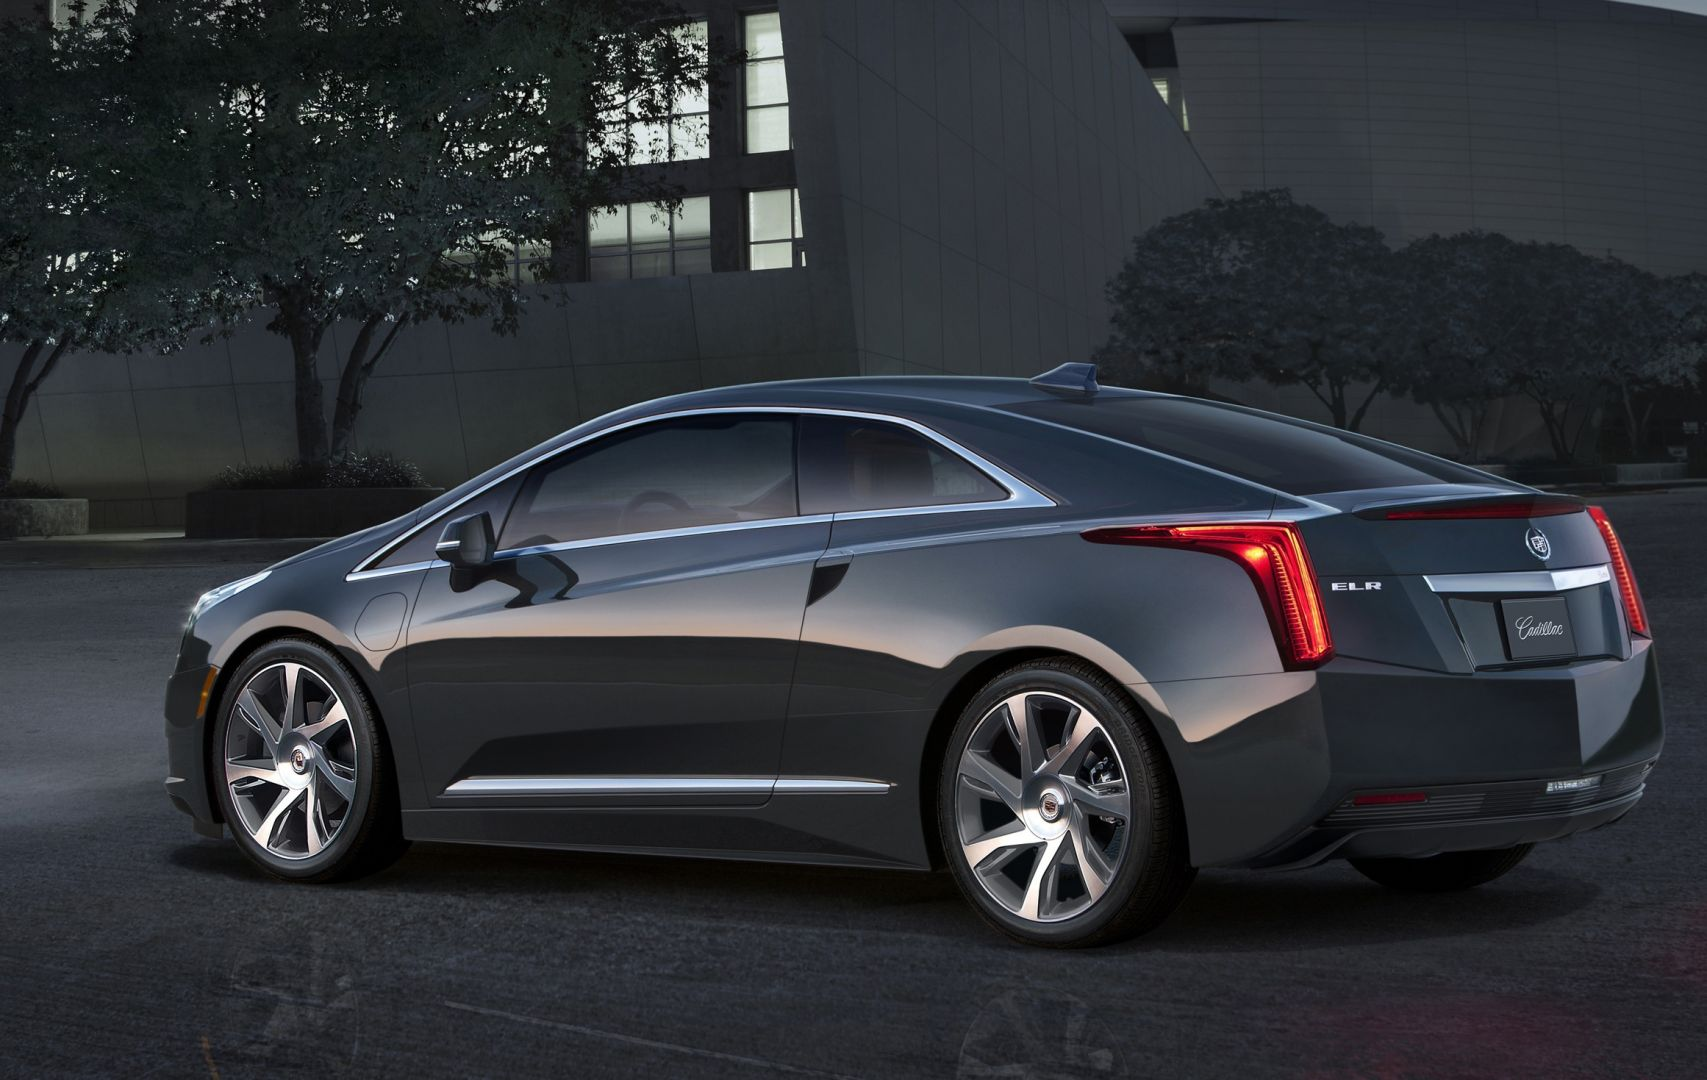 voiture lectrique am ricaine cadillac elr voiture neuve et d 39 occasion de luxe marseille. Black Bedroom Furniture Sets. Home Design Ideas